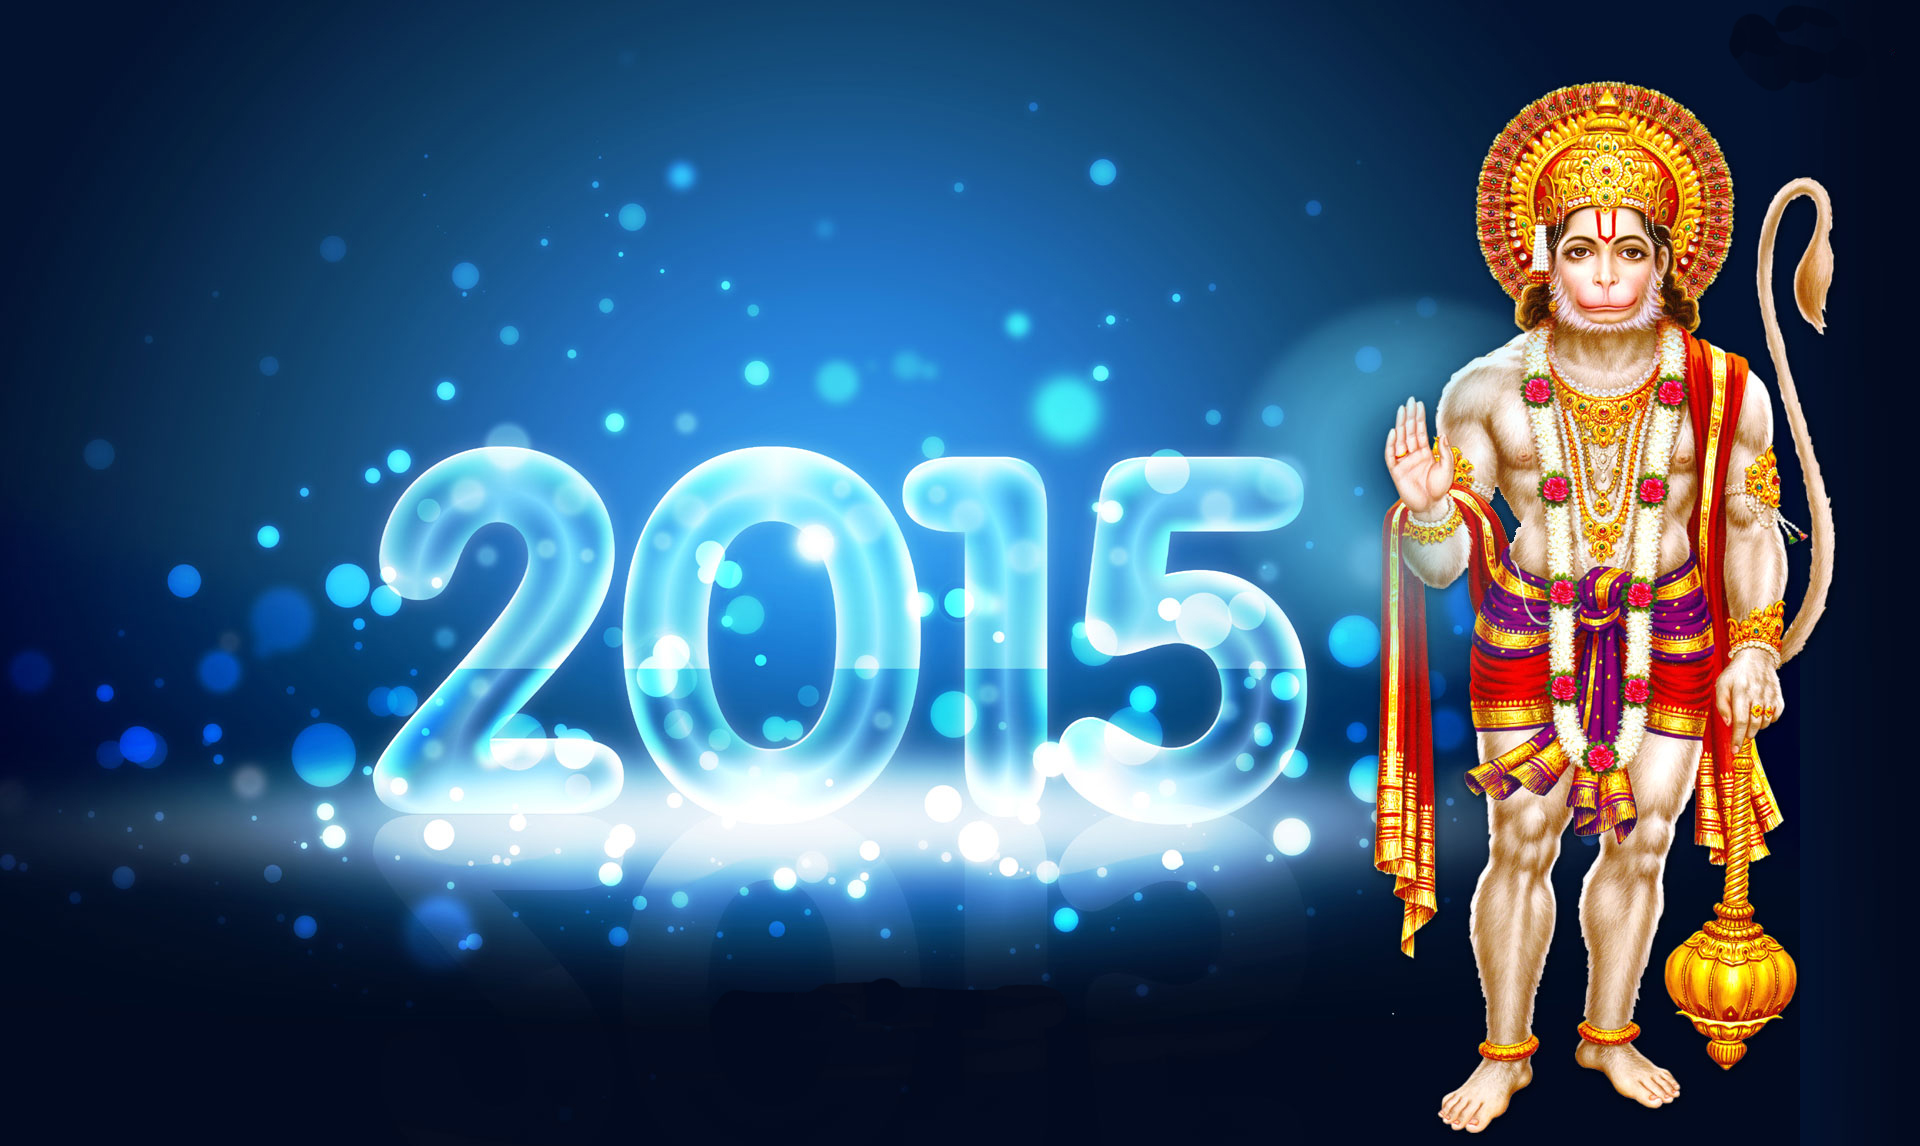 download best happy new year 2015 hd wallpaper in 1080p wallpapers images free latestwall